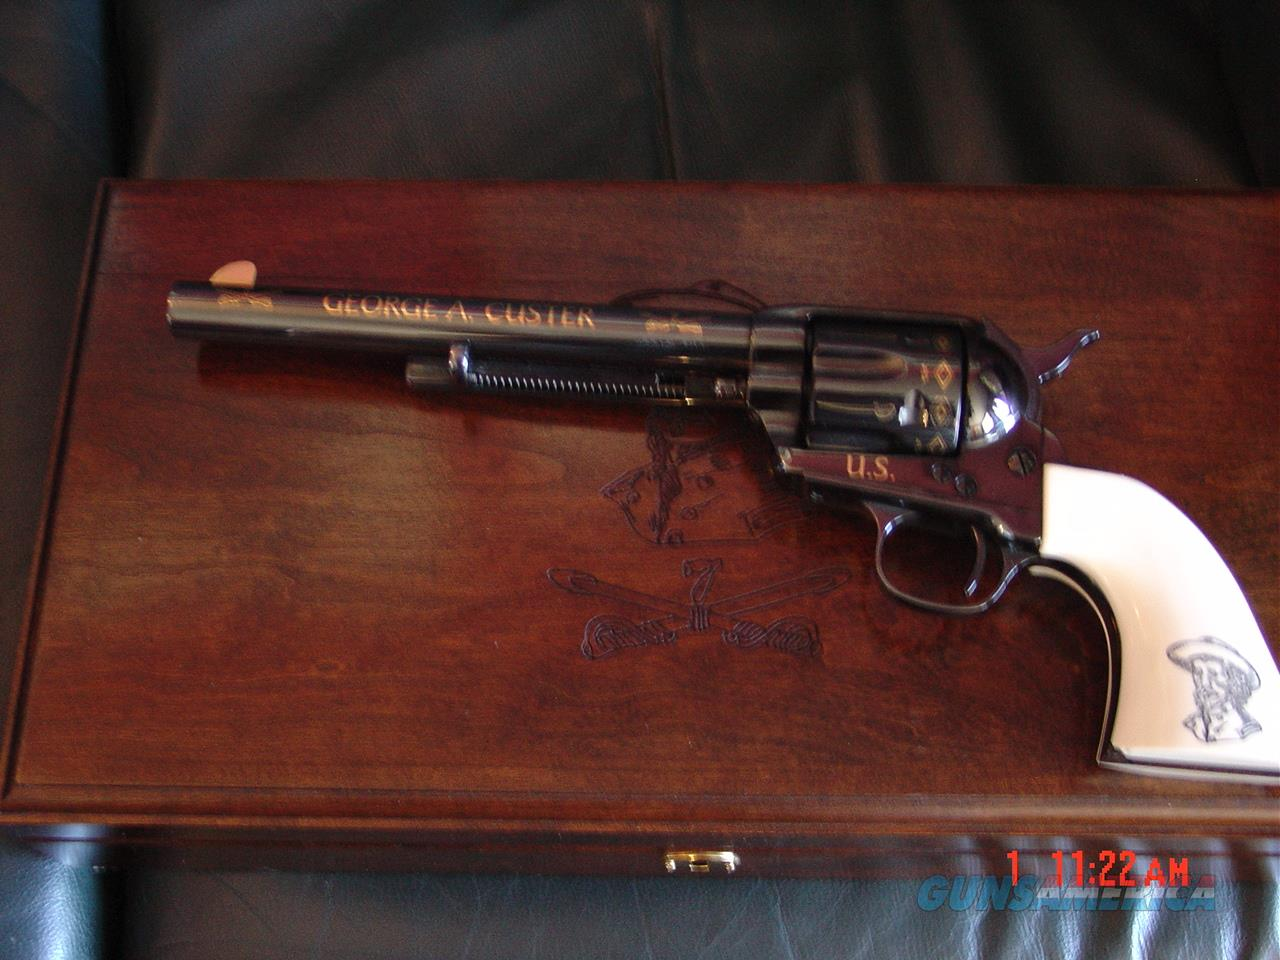 """Uberti SAA 7 1/2"""" 45 Colt, George Custer 7th Cavalry tribute,gold engraved,#148 of 500,fitted case,belt buckle,never fired, awesome showpiece  Guns > Pistols > Collectible Revolvers"""